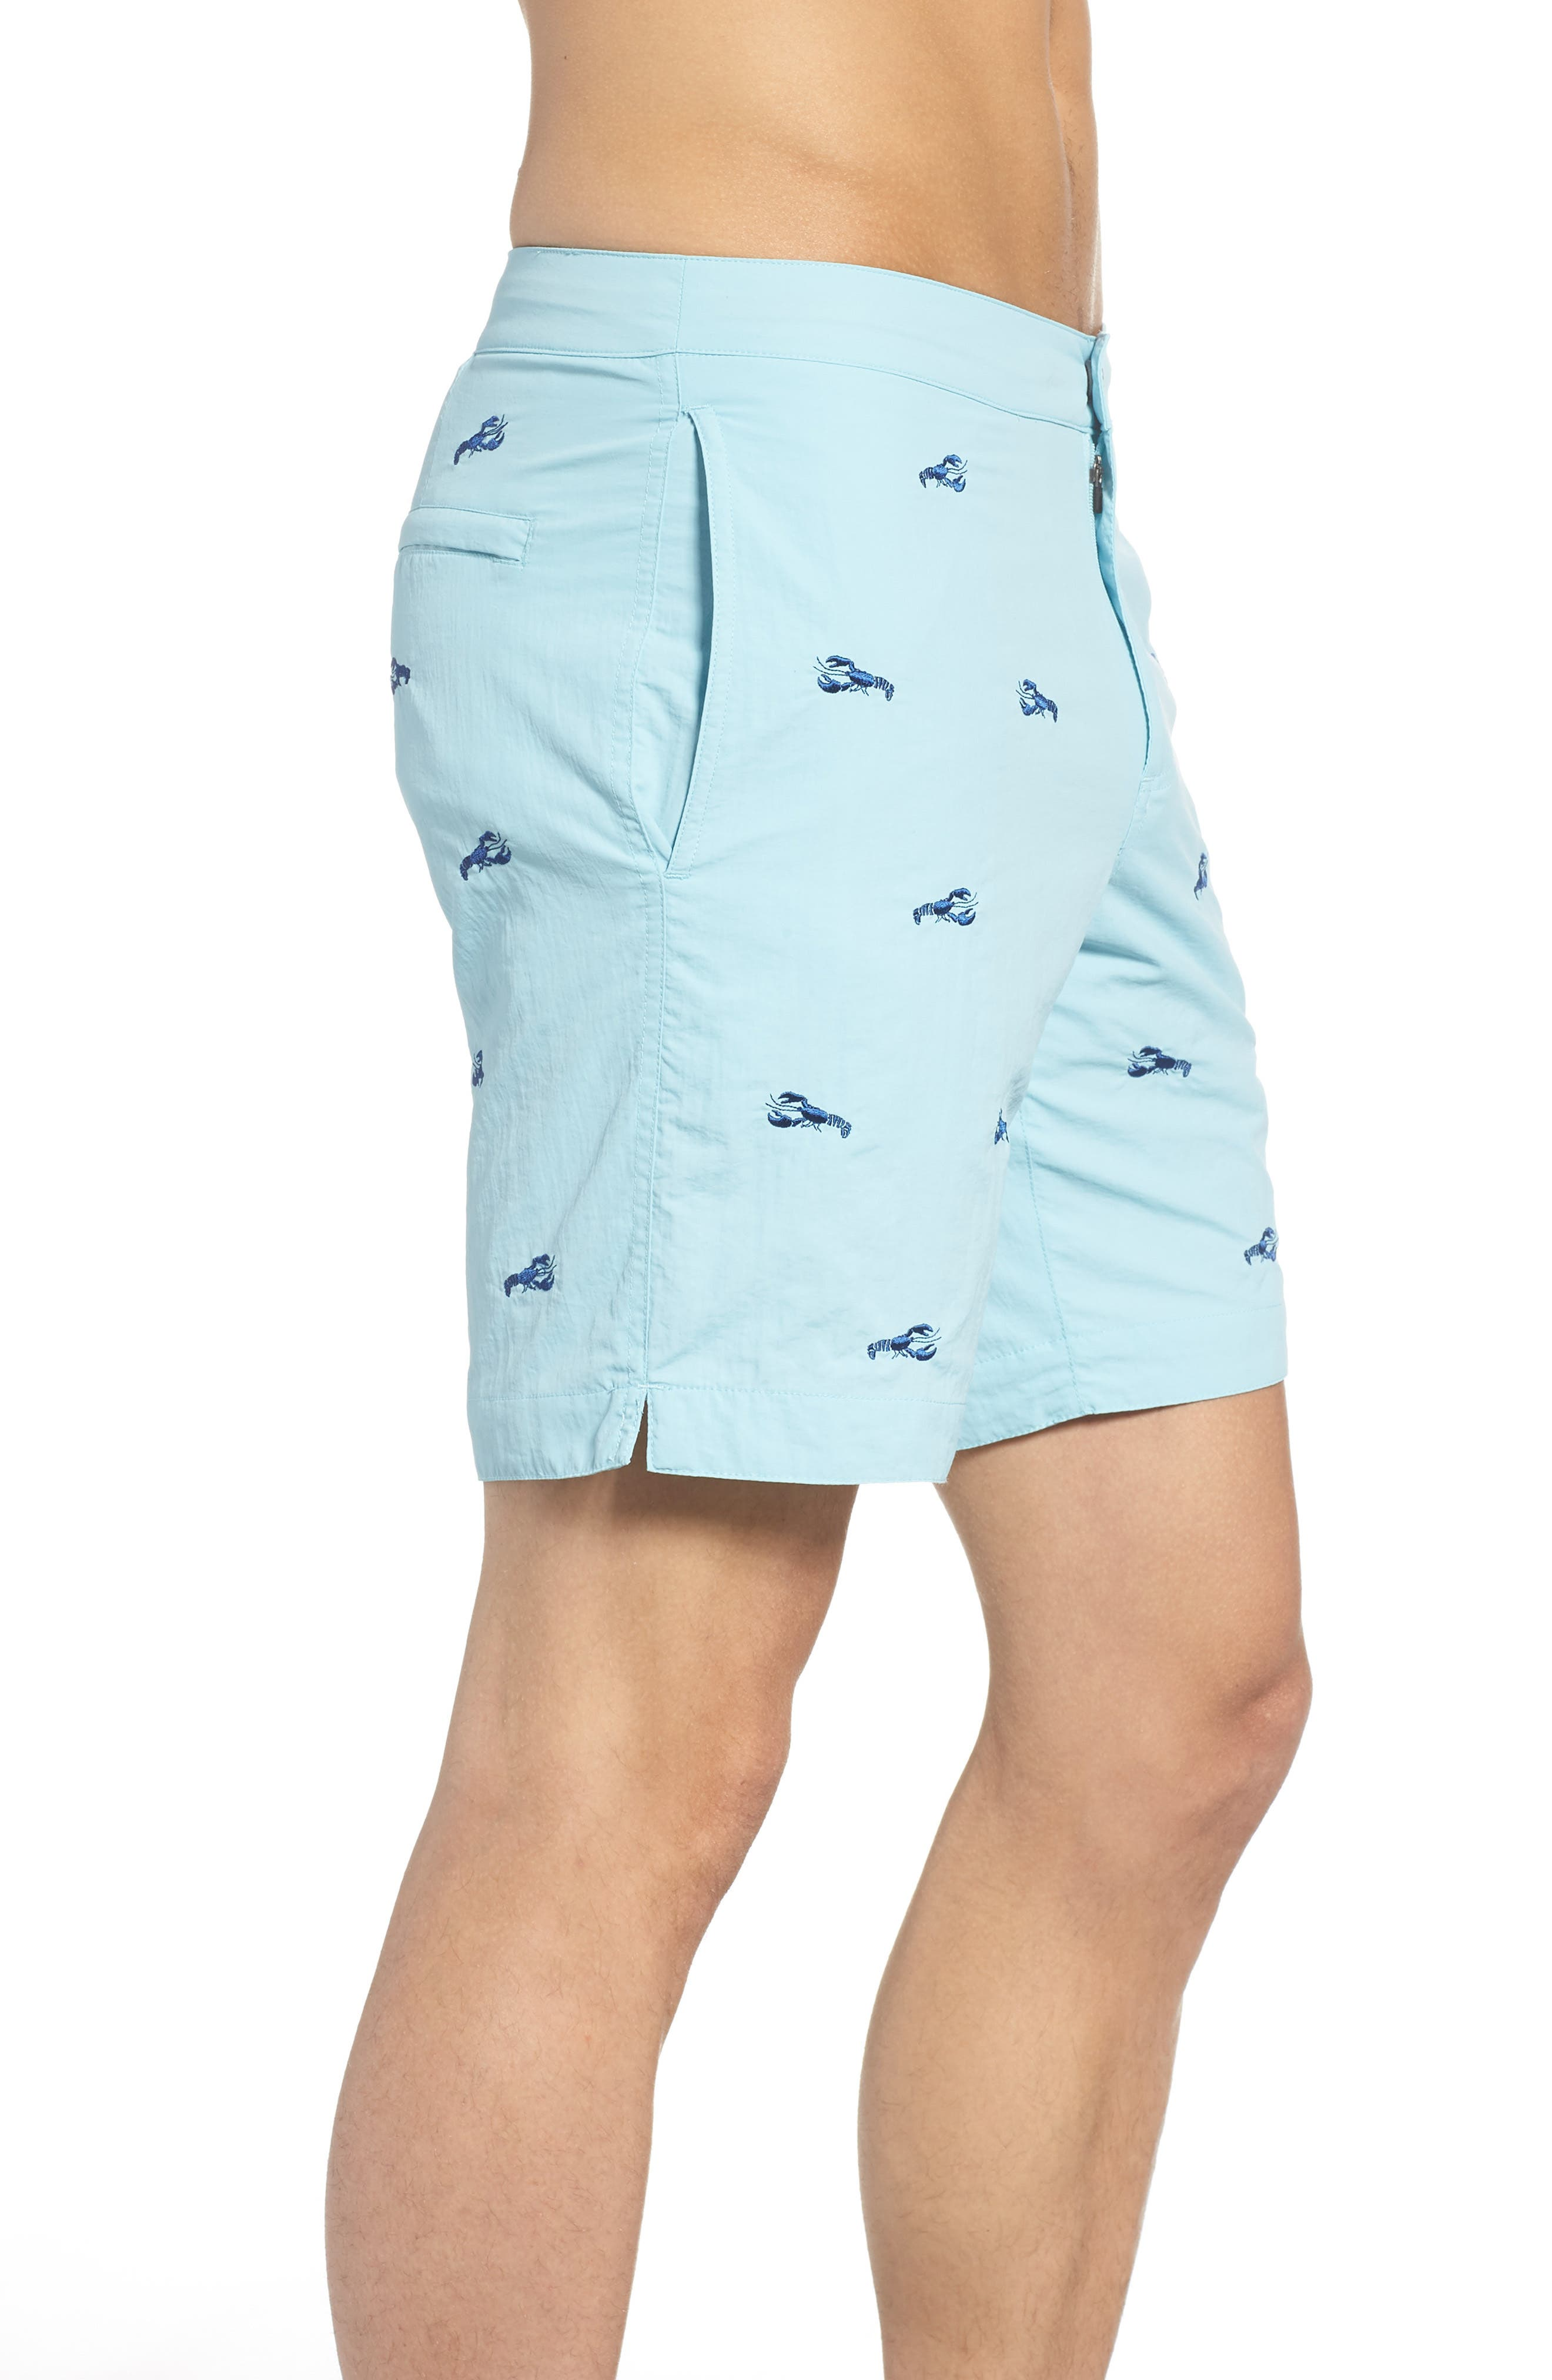 Aruba Embroidered Lobster Swim Trunks,                             Alternate thumbnail 5, color,                             Aqua Embroidered Lobsters